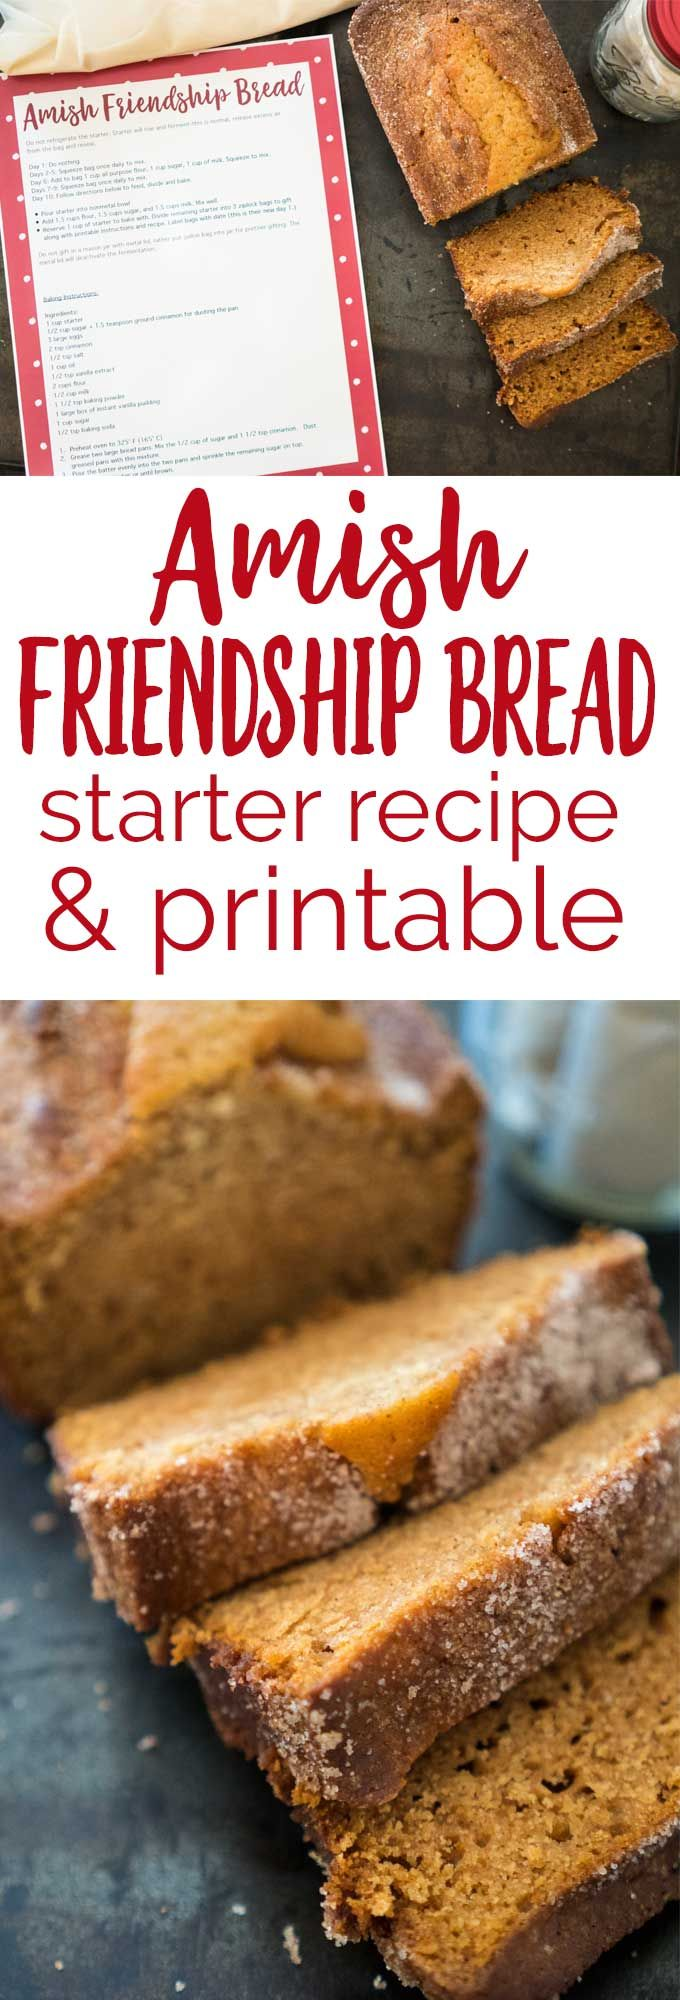 Amish Friendship Bread is the perfect recipe to share with friends. Now you can make your own with this starter recipe along with a free printable for gifting starter to others! #recipe #DIYgift #friendshipbread